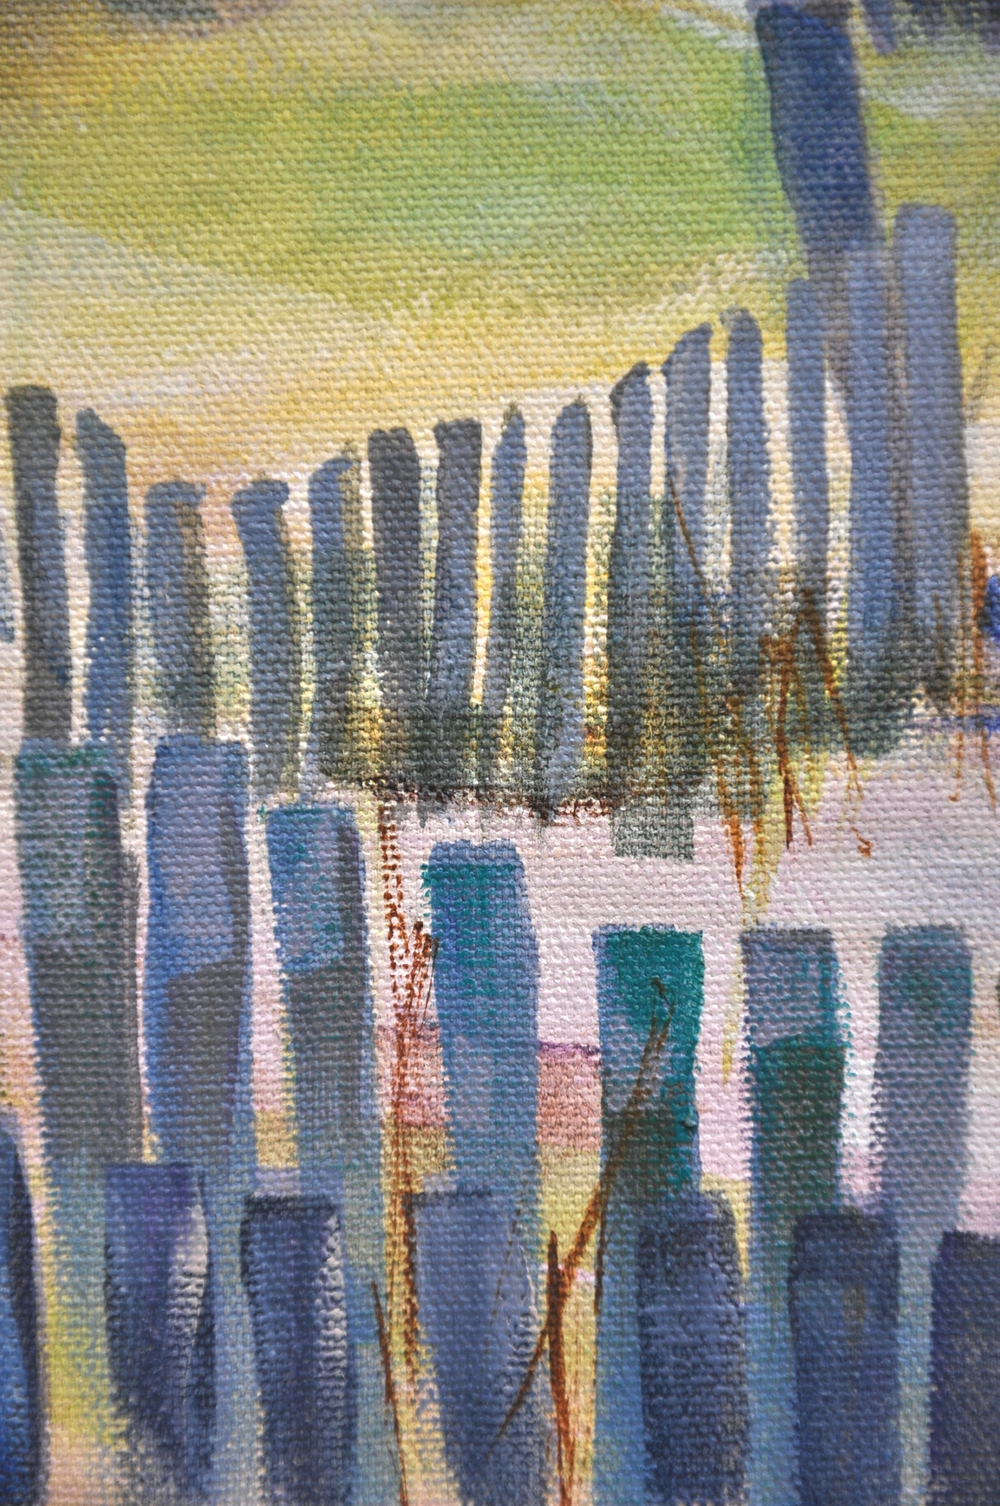 South Sandfences 16x12 Apr 2014 (detail2).JPG